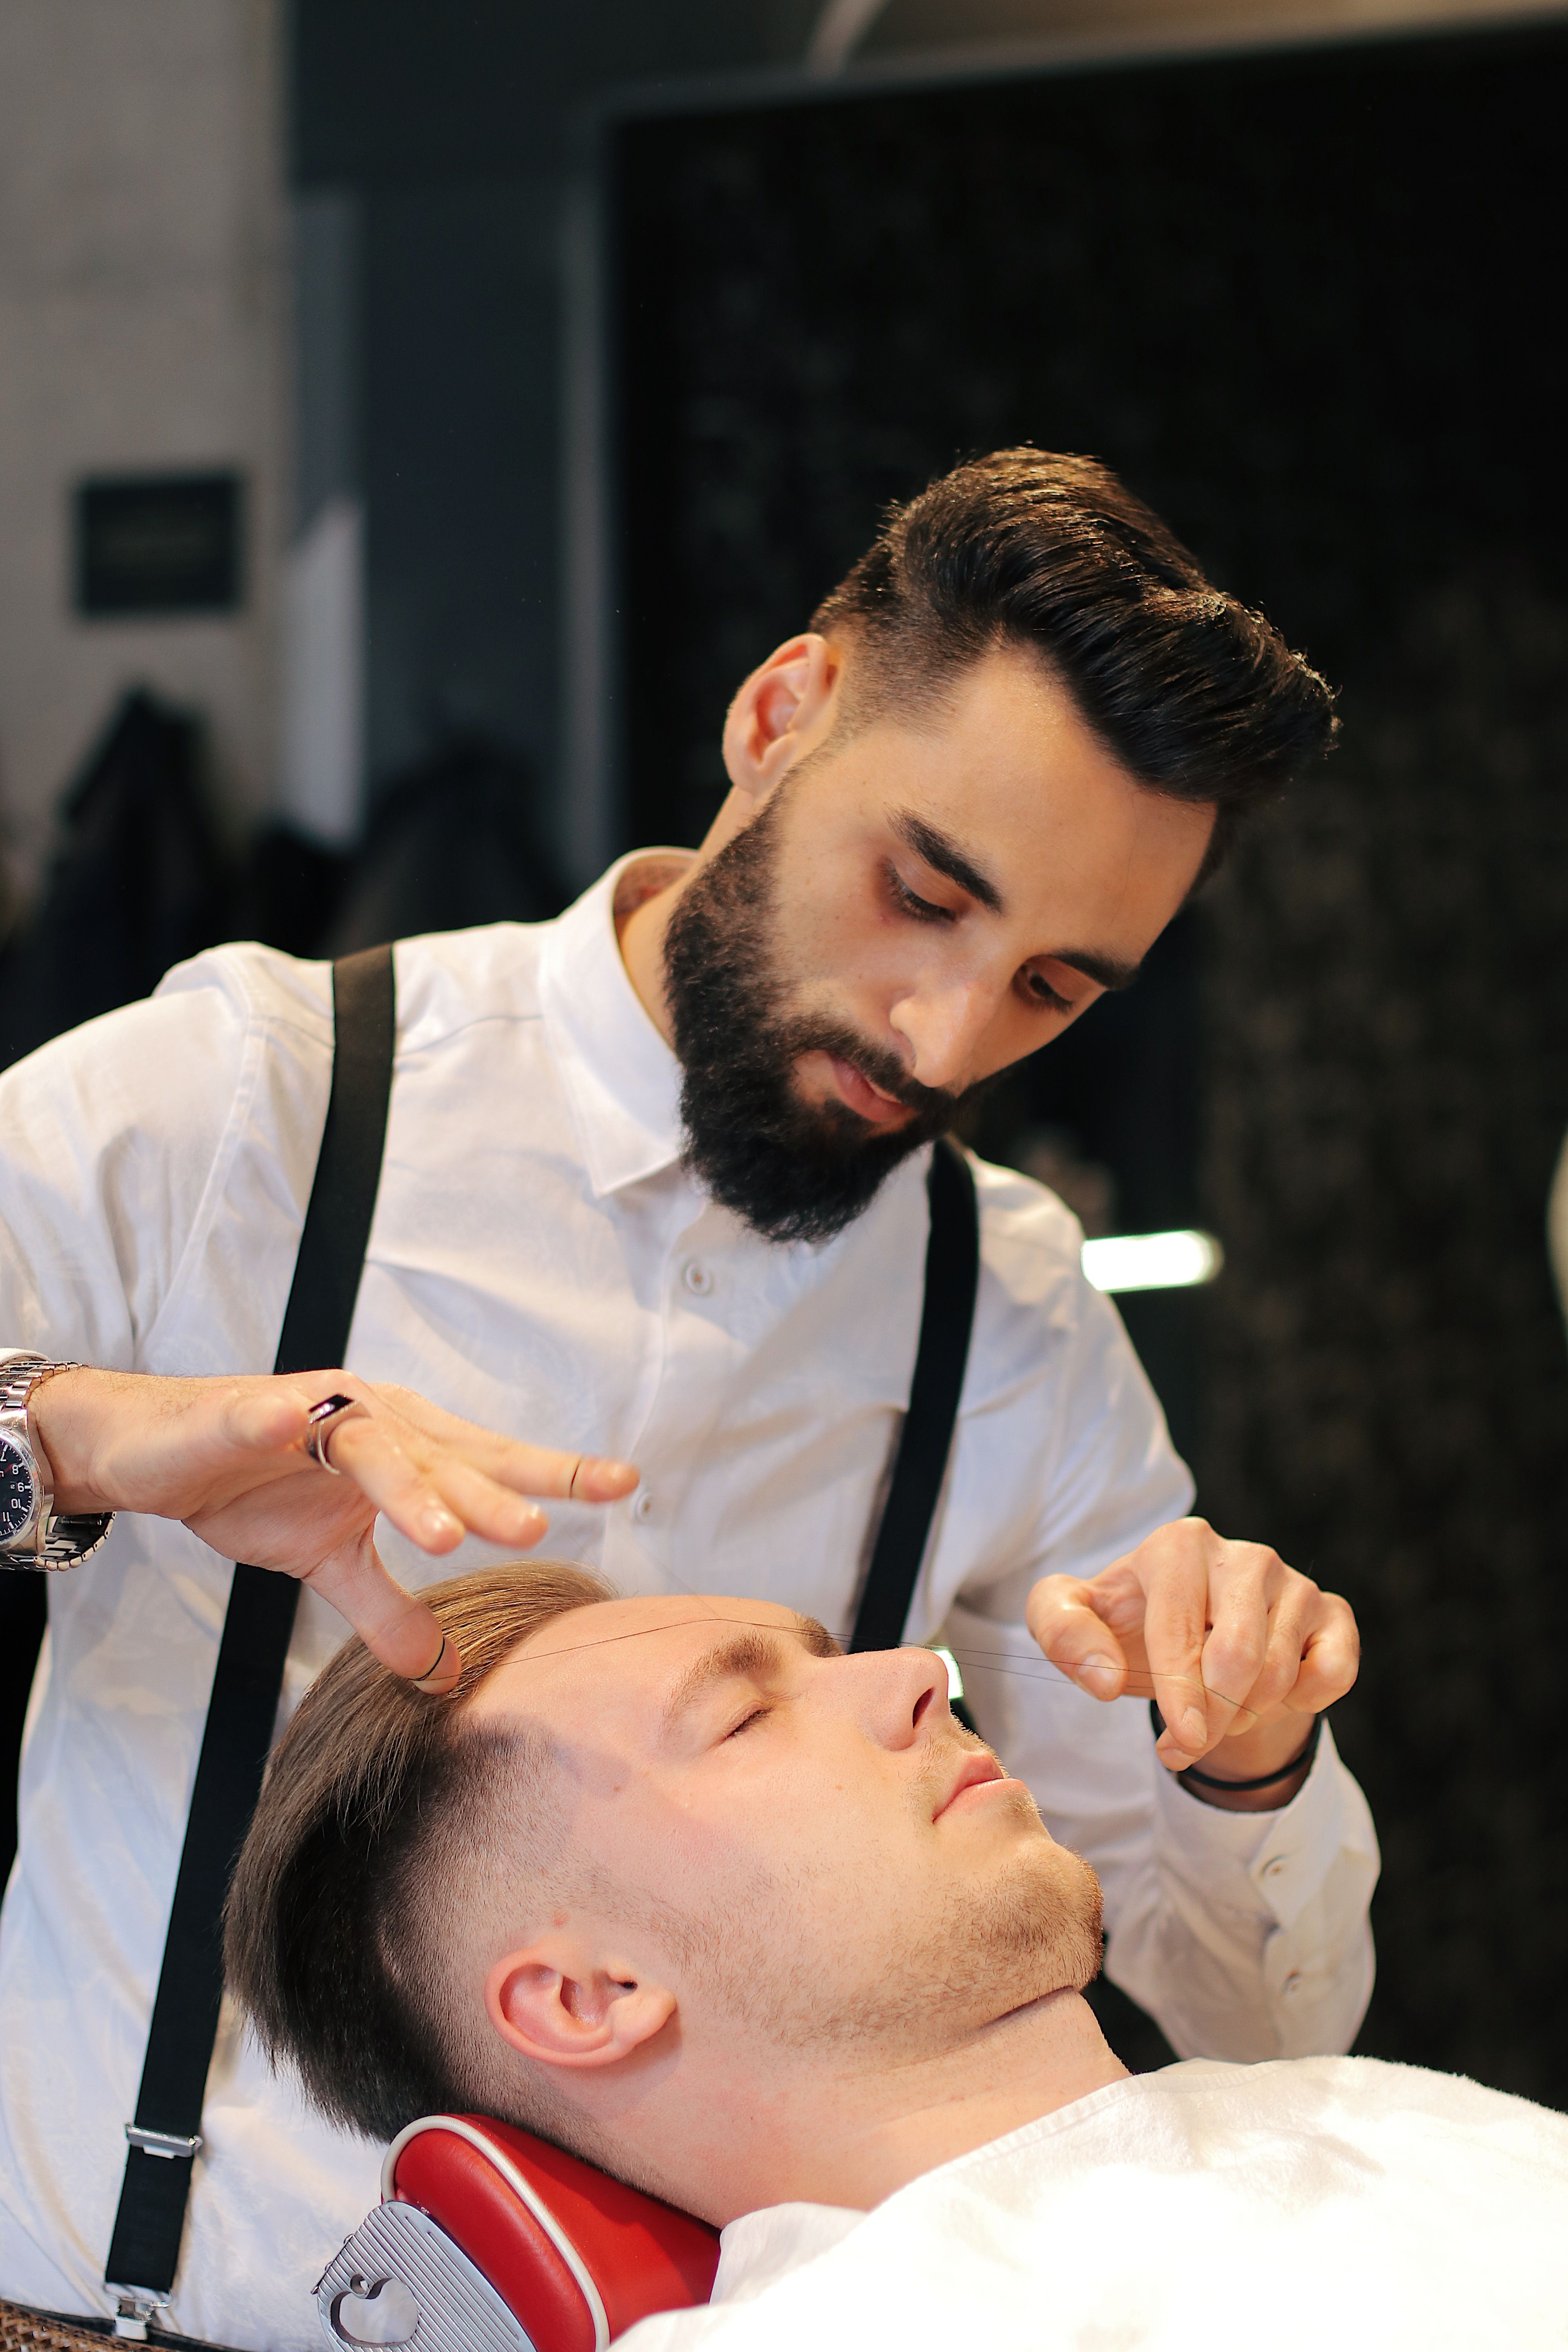 Ted S Master Barbers Brow Grooming Goal Is To Ensure A Clean Look